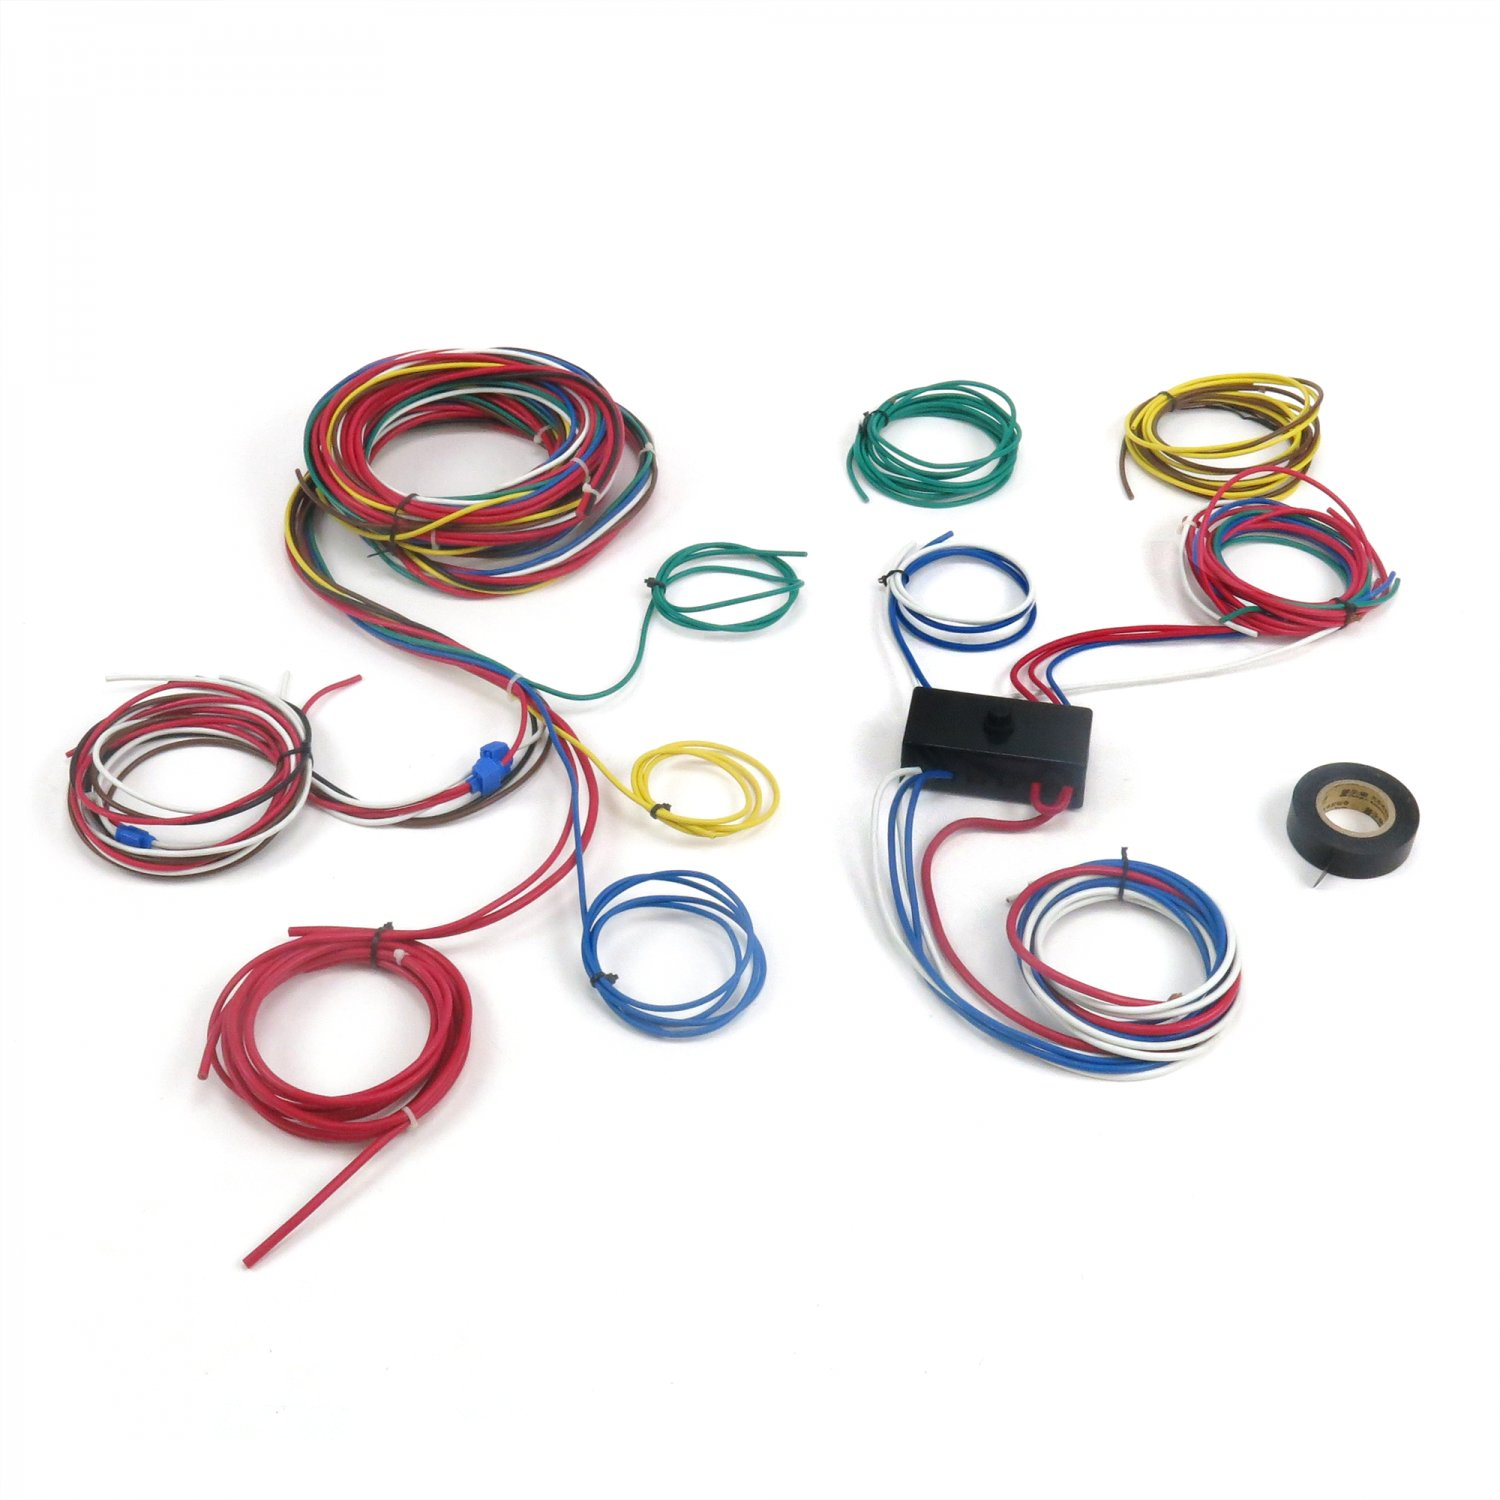 1500 dune buggy universal wiring harness w fuse box fits empi 9466 vw VW Wiring Harness Kits at aneh.co